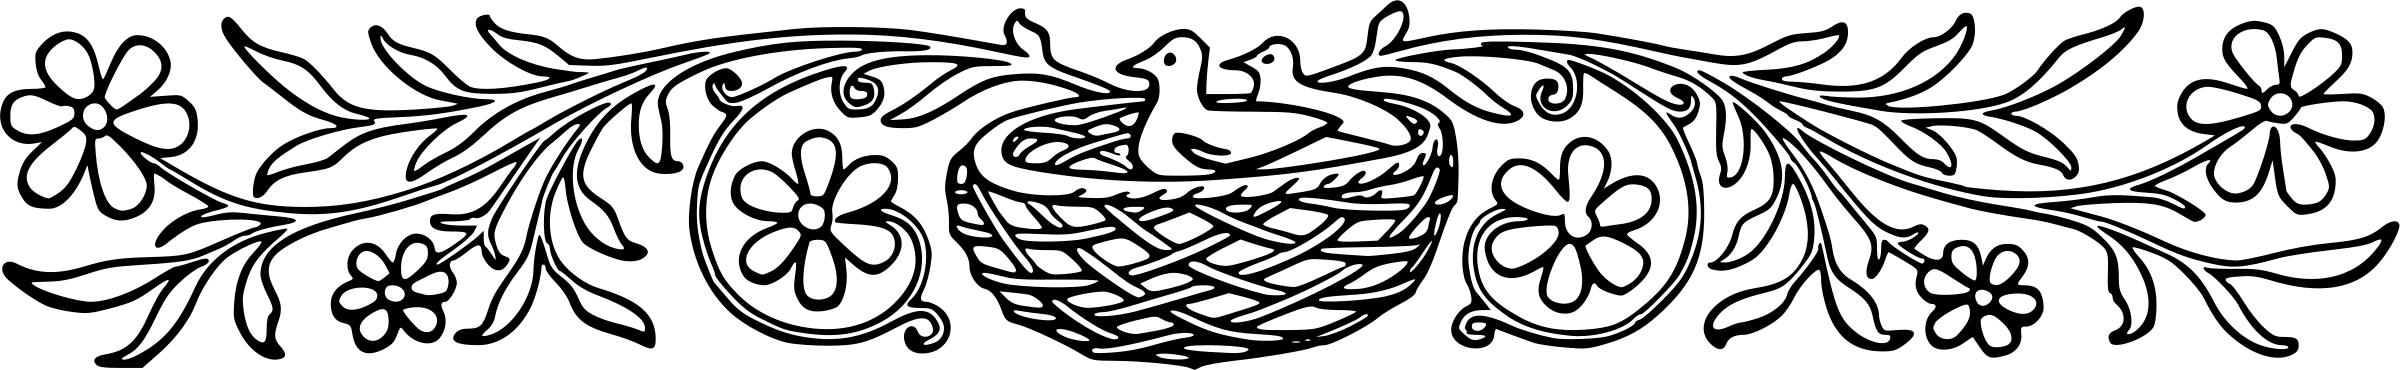 Birds clipart divider. Decorative icons png free